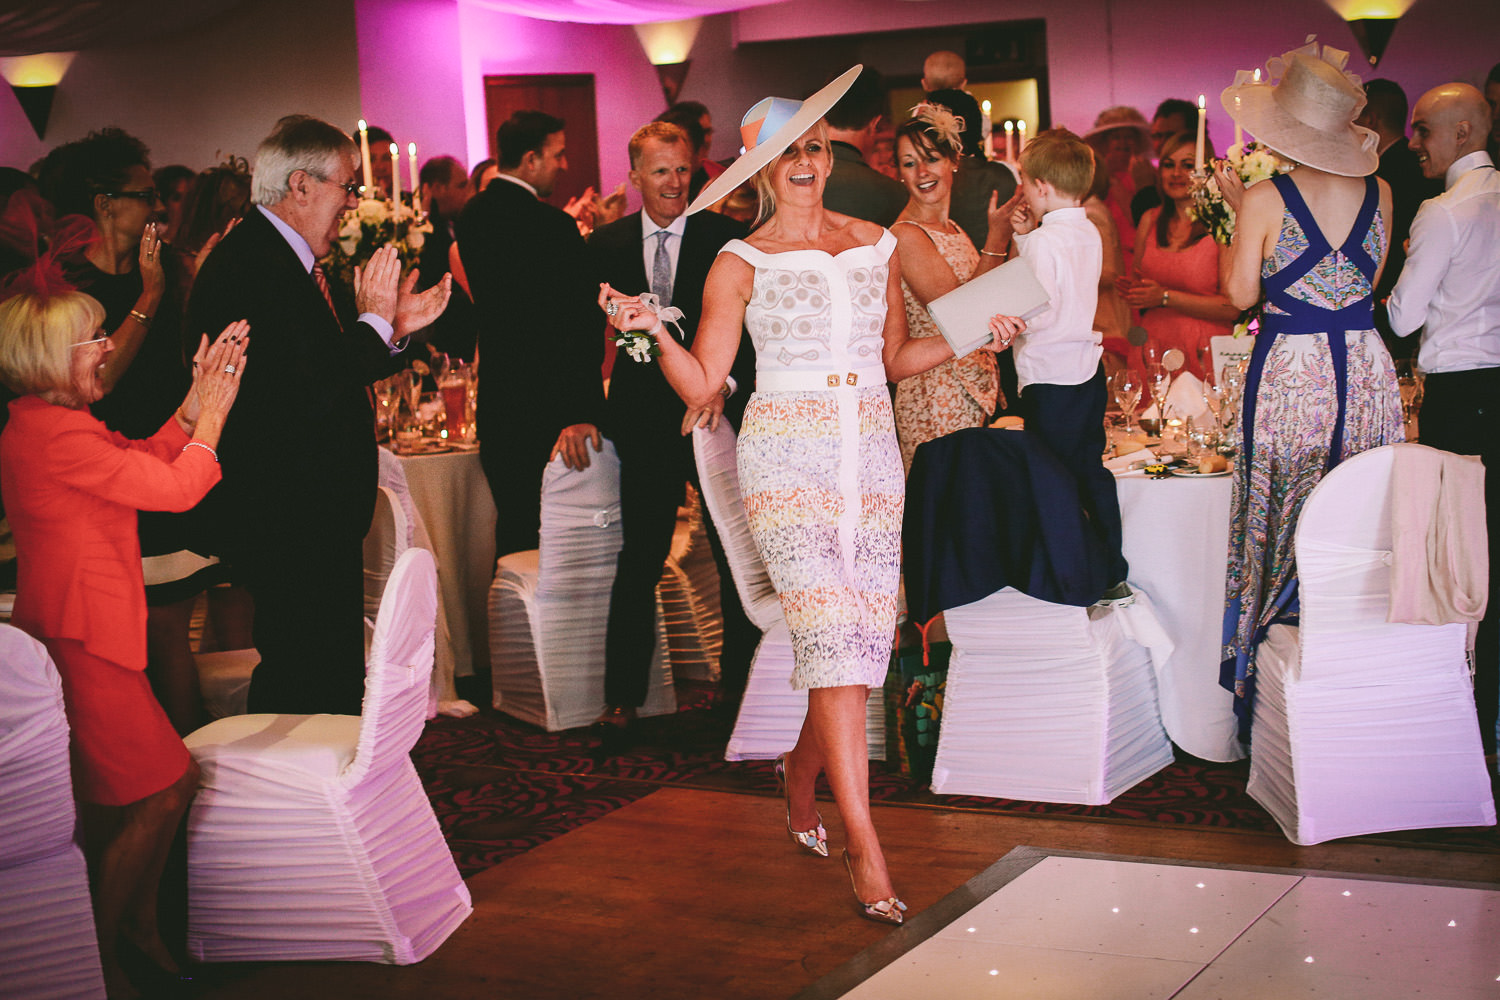 The Kinmel hotel wedding reception